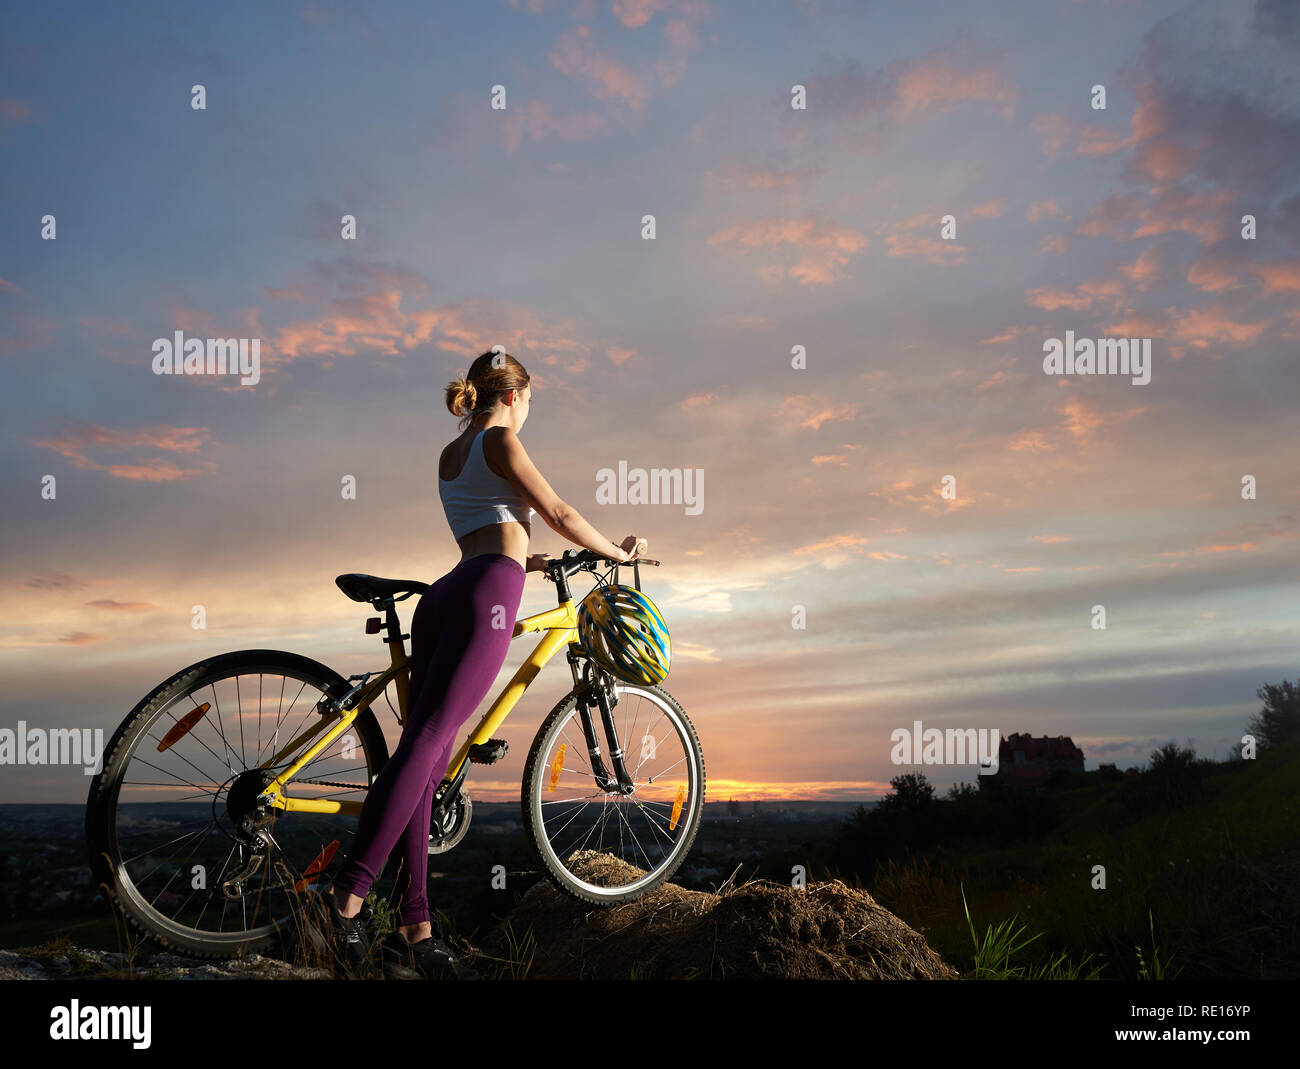 Slender woman with a mountain bike is standing on a hill under a beautiful sky at sunset against the background of the town in the distance. Helmet hangs on the handle of a bicycle - Stock Image